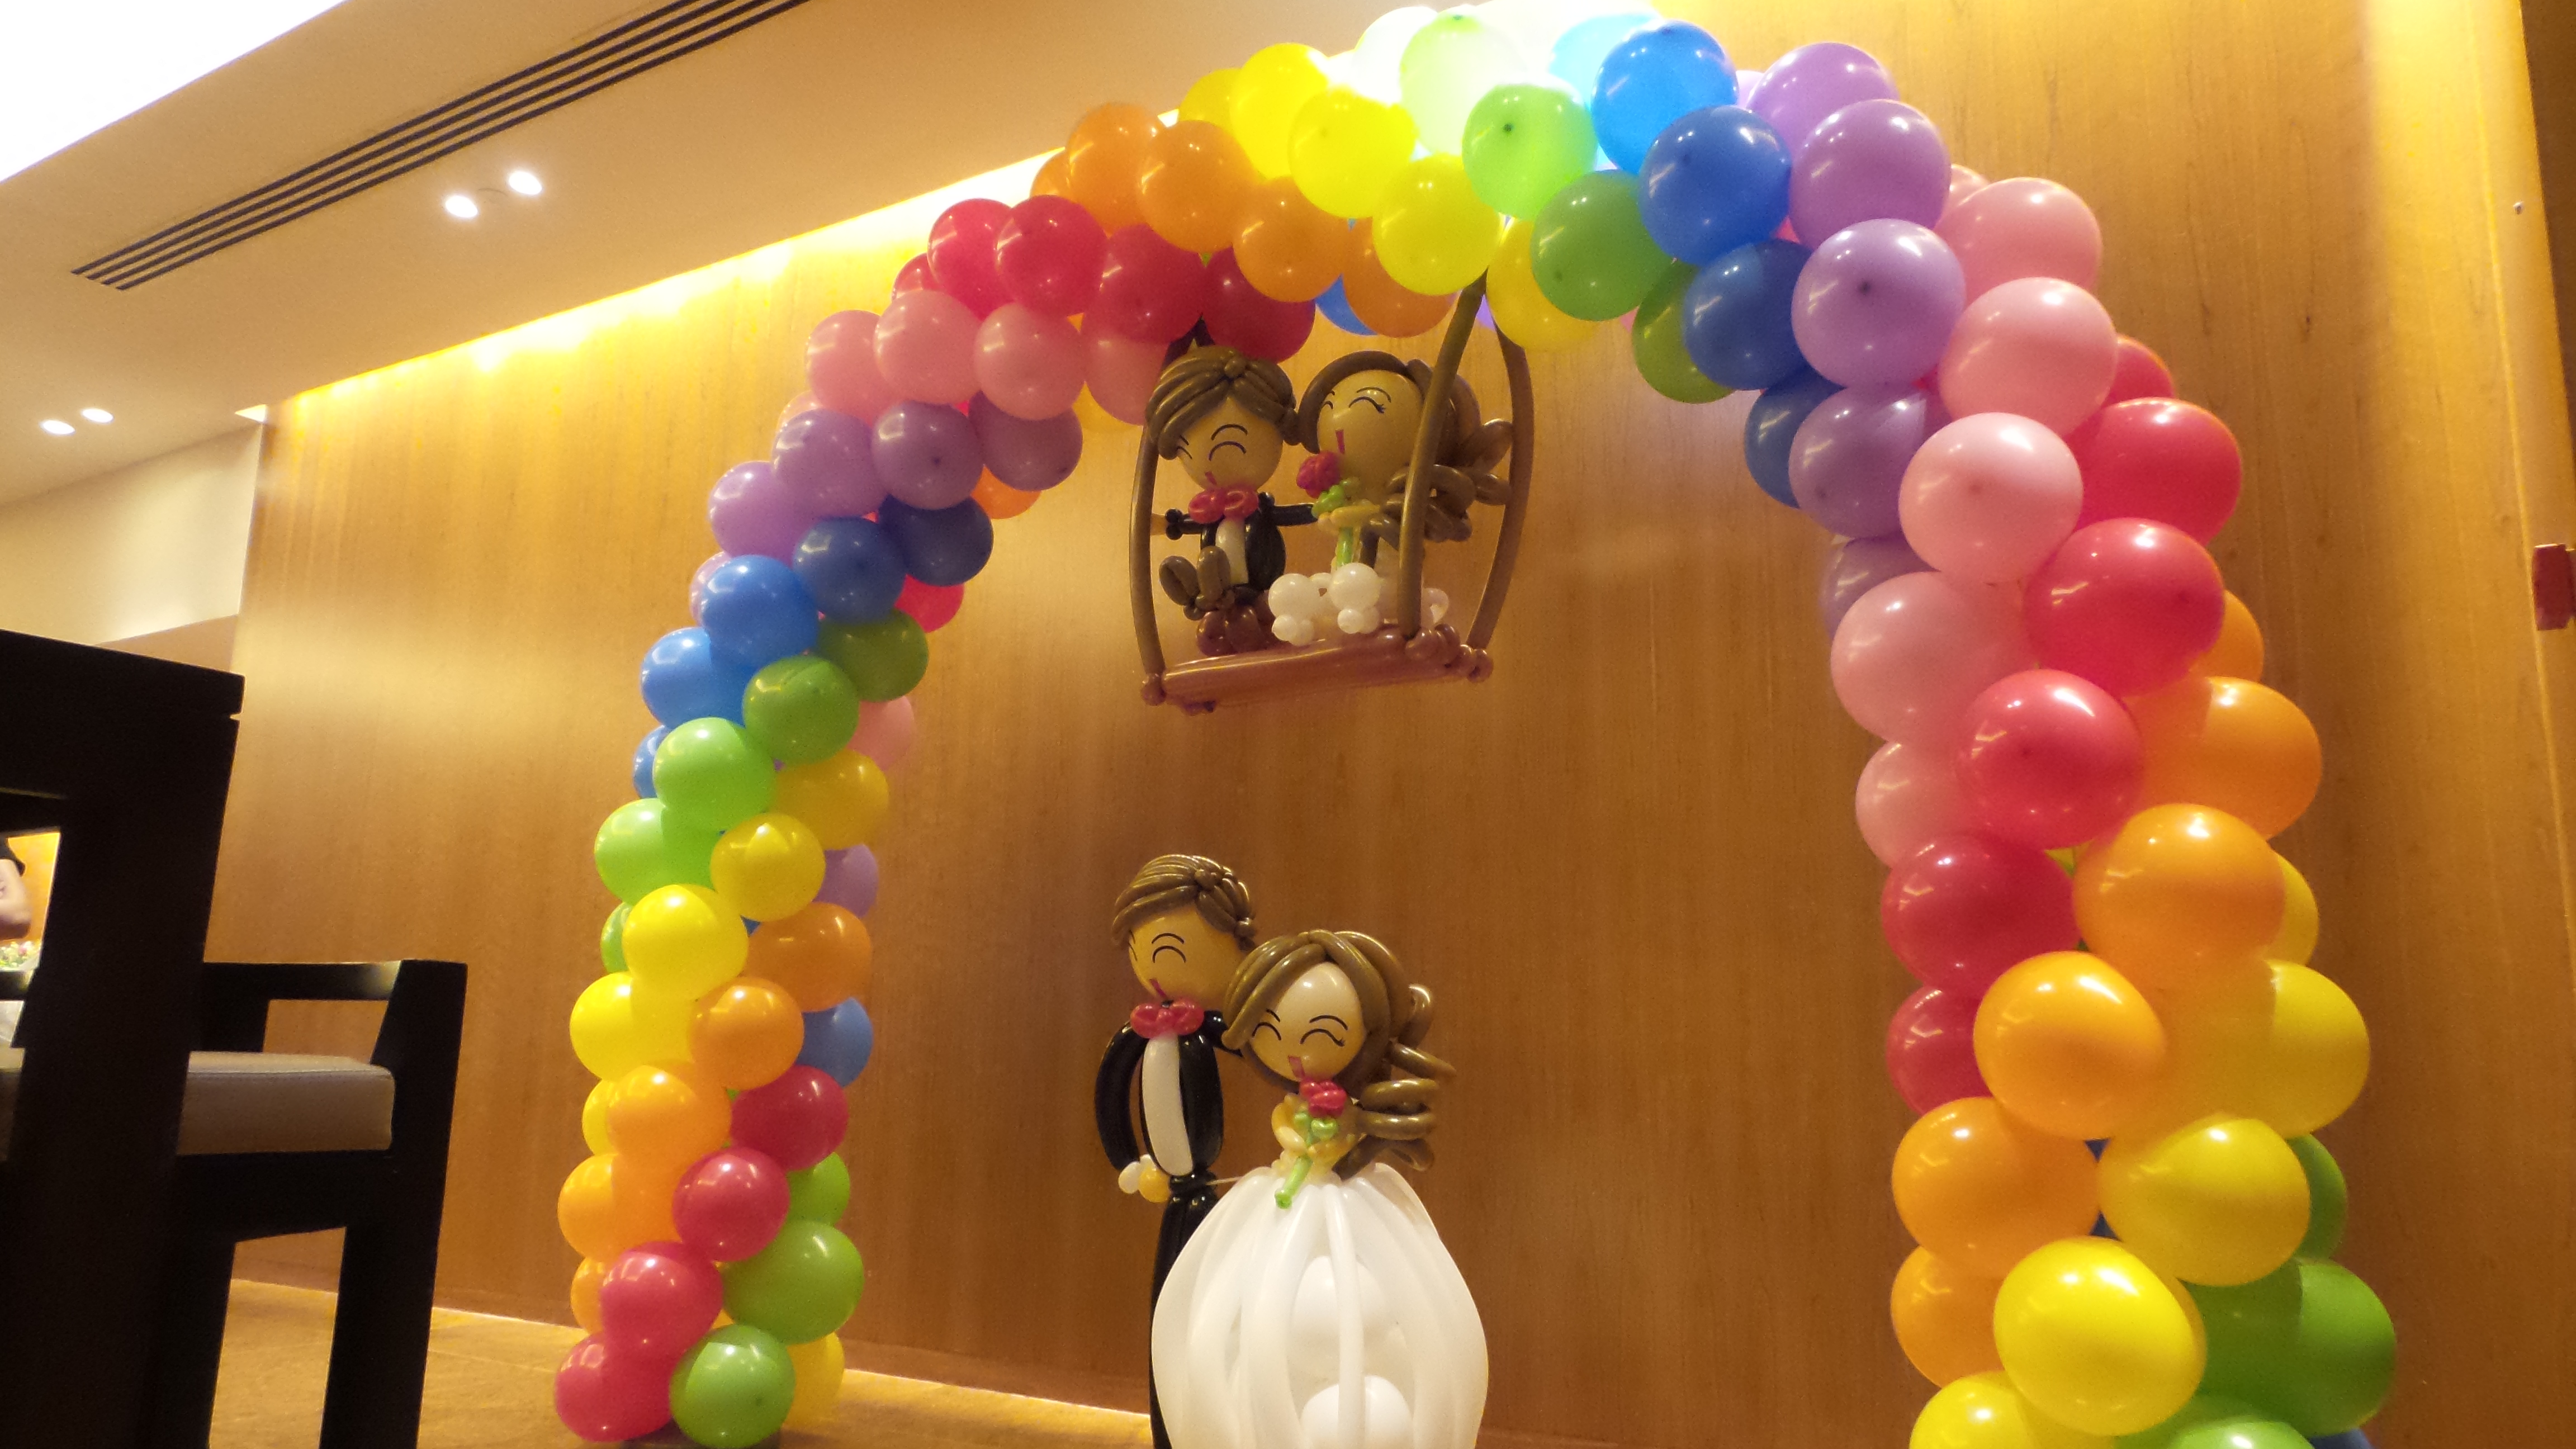 Balloon arch for wedding - Full Rainbow Balloon Arch With Wedding Couple On Swing